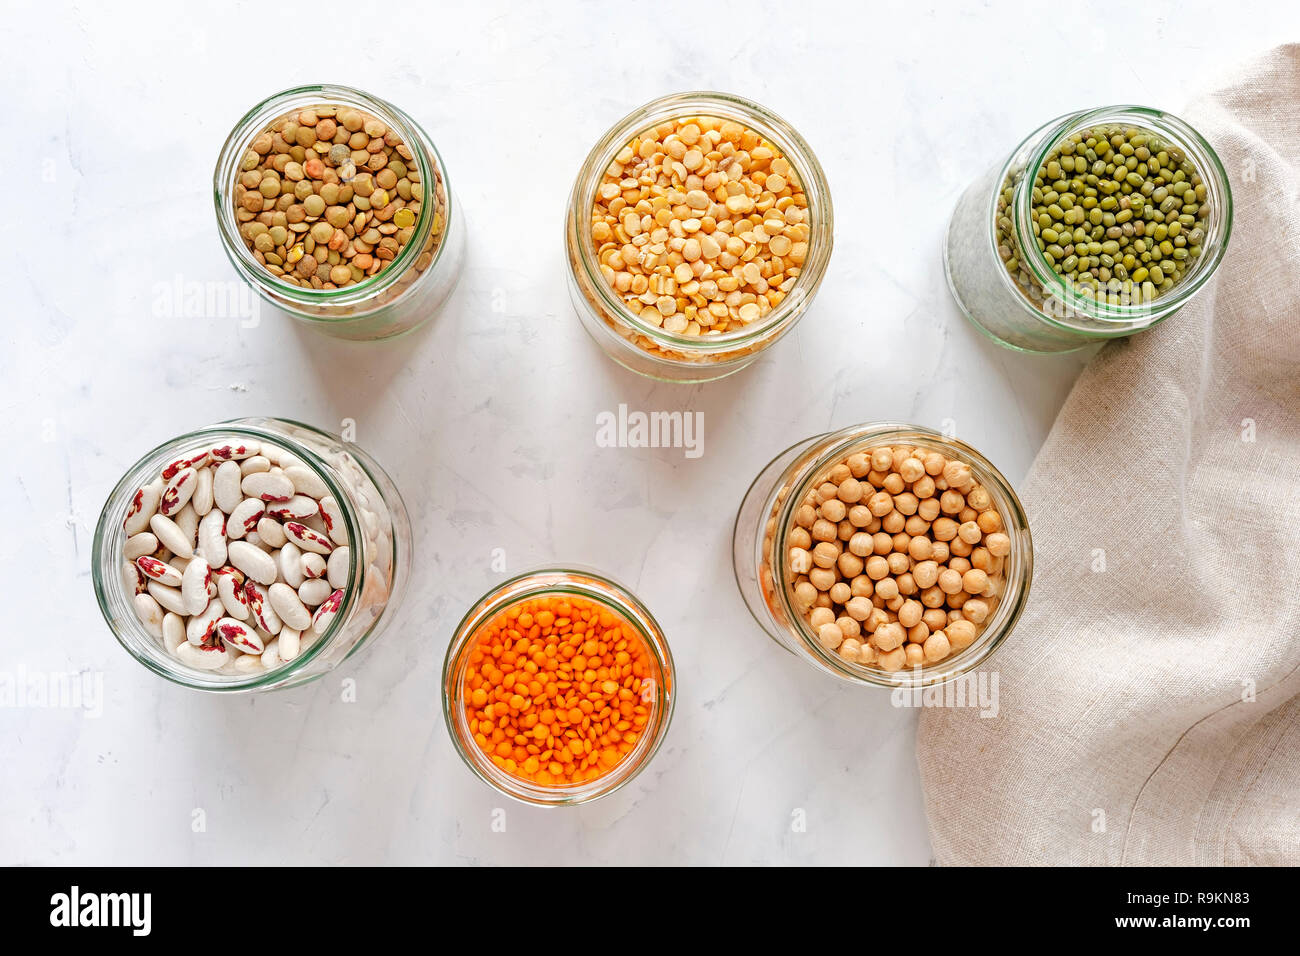 Open glass jars full of assorted dried legumes with mung beans, beans, lentils and peas over a white background Stock Photo